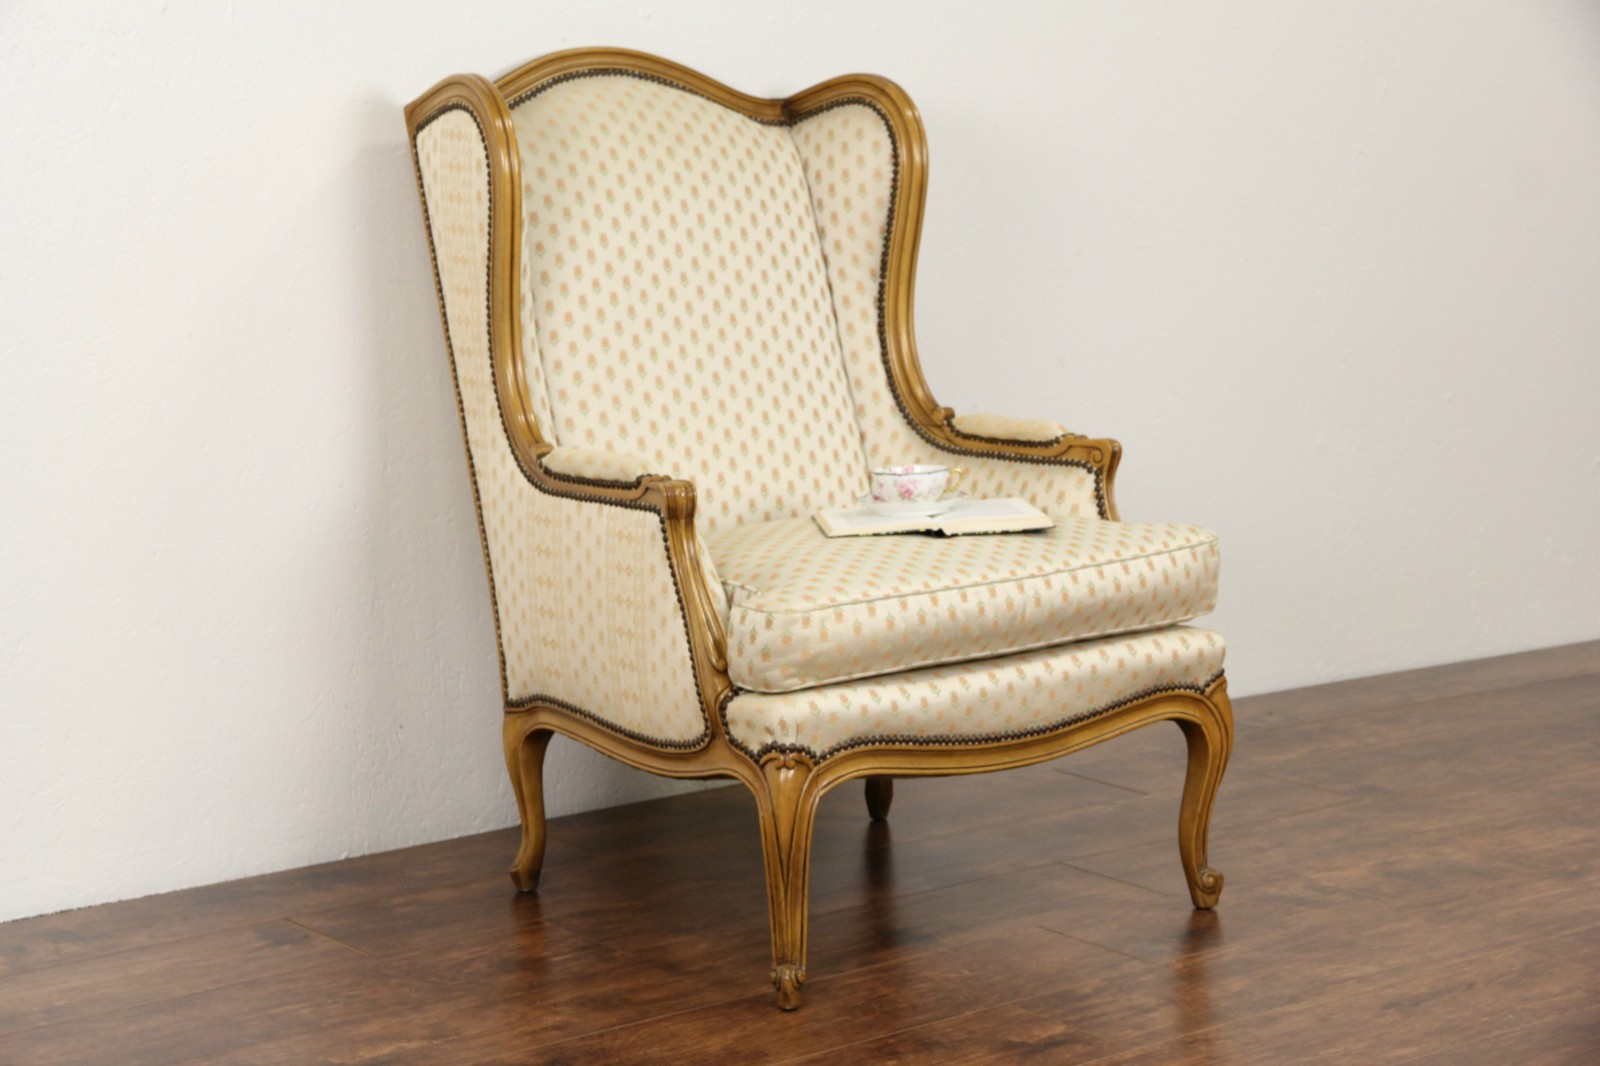 Sold Baker Signed Vintage Fruitwood Wing Chair Harp